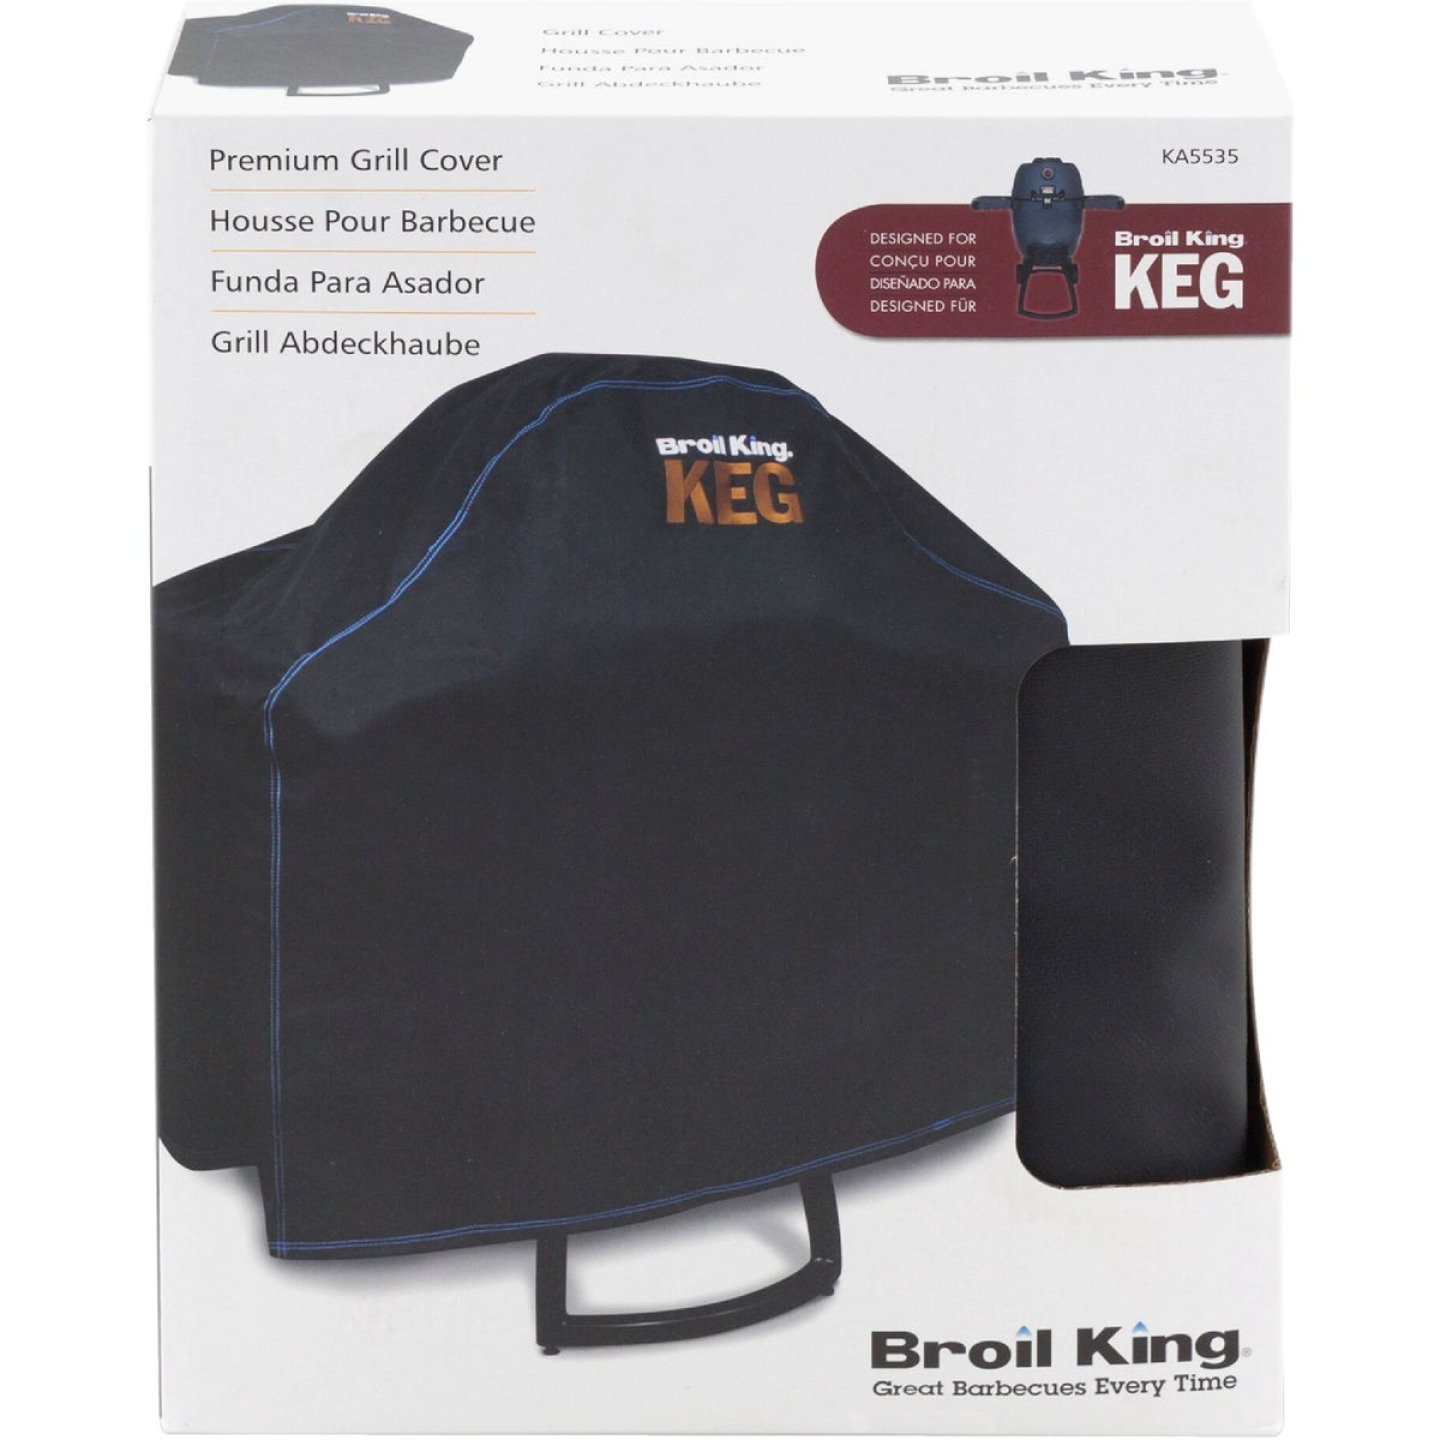 Broil King Keg 5000 45 In. Black PVC/Polyester Grill Cover Image 2